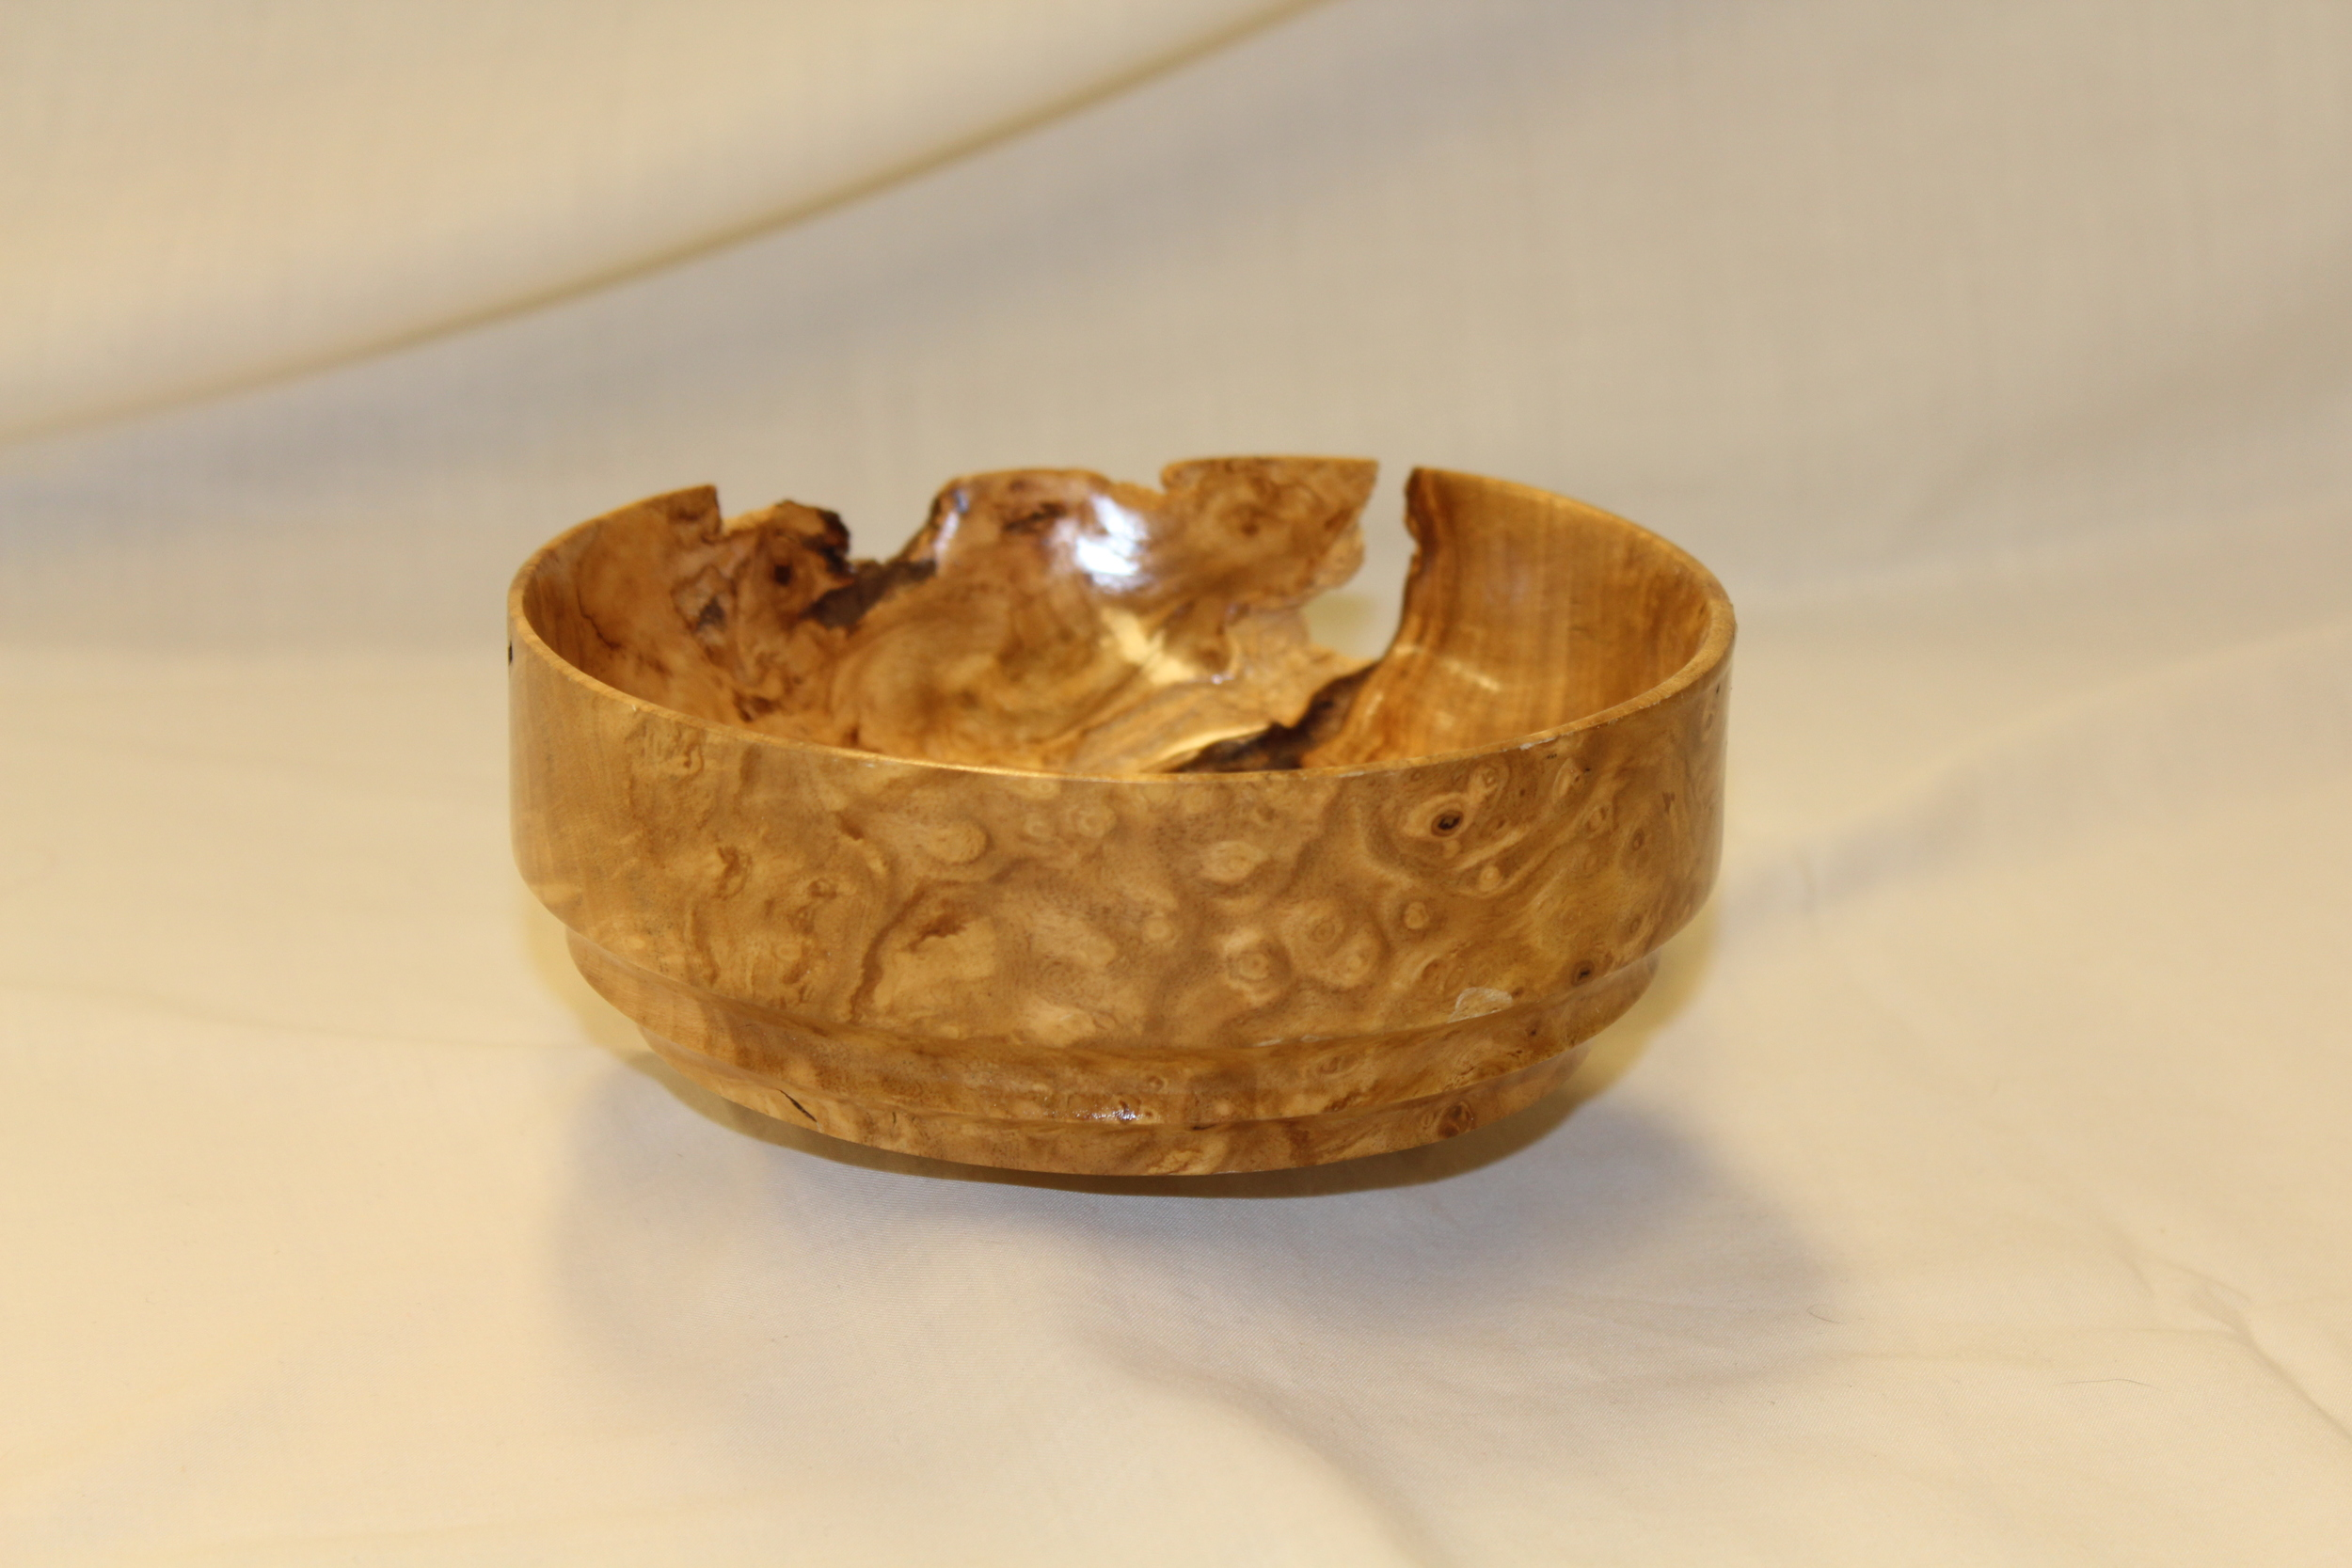 Natural Form Bowl (Unknown Wood)